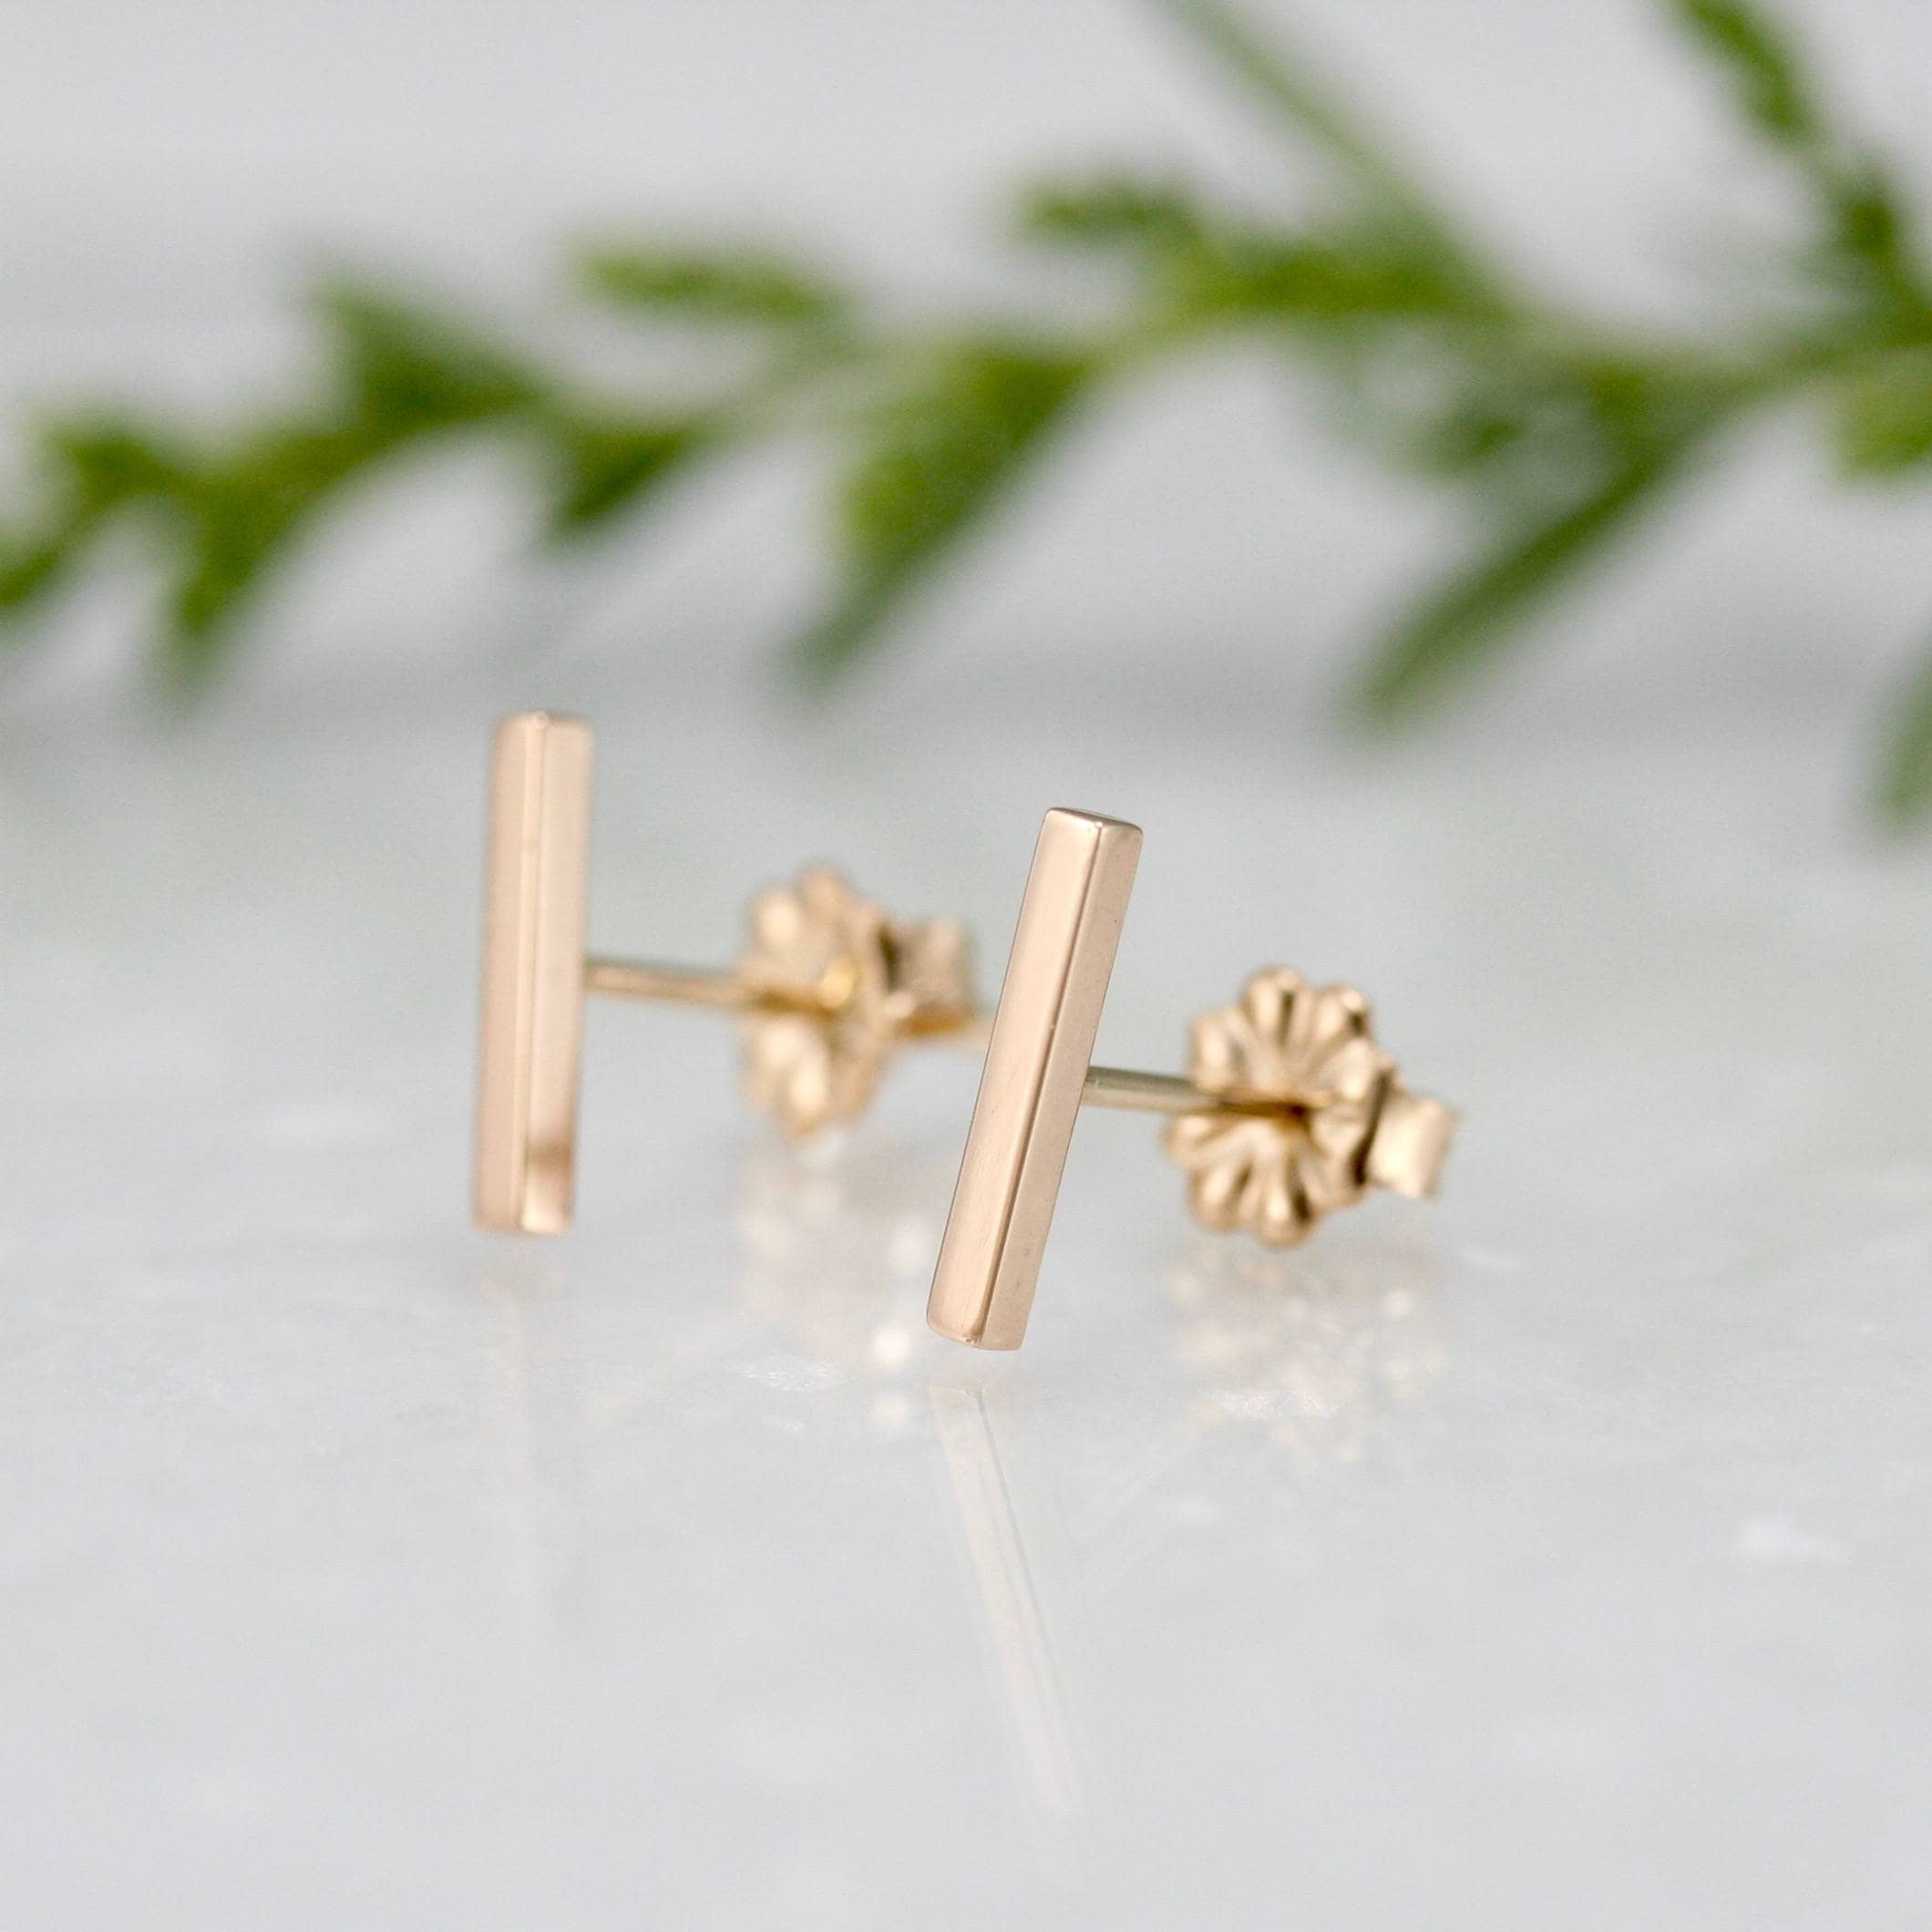 staple minimalist her stud fullxfull unisex listing line il gold earrings gift bar solid for